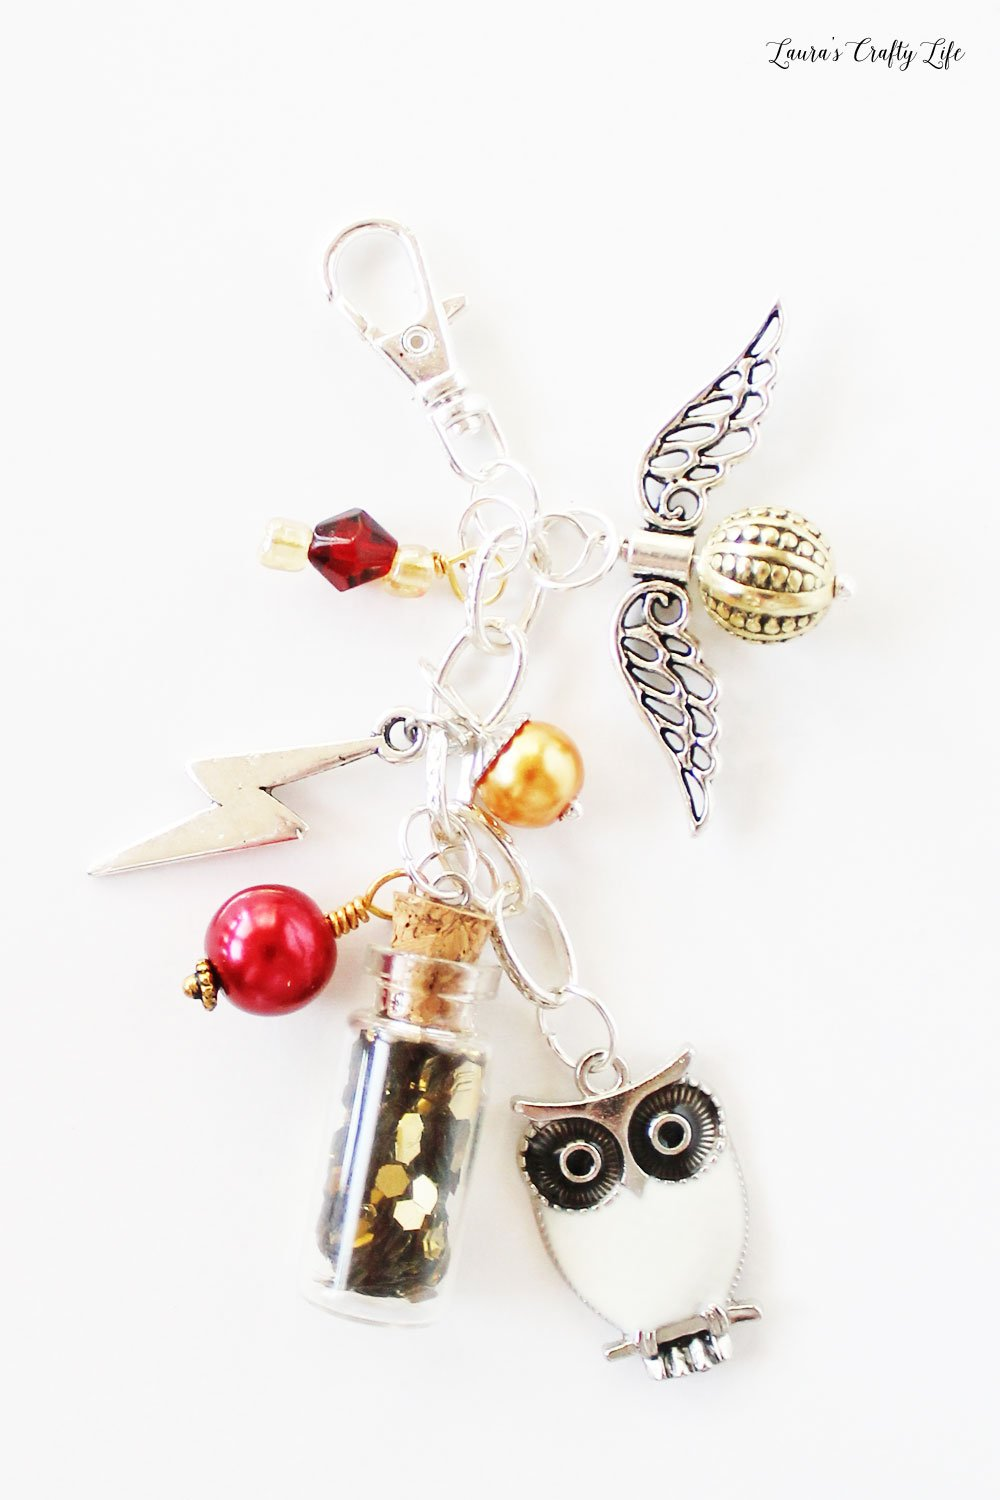 How to create a DIY Harry Potter planner charm #harrypotter #plannercharm #laurascraftylife